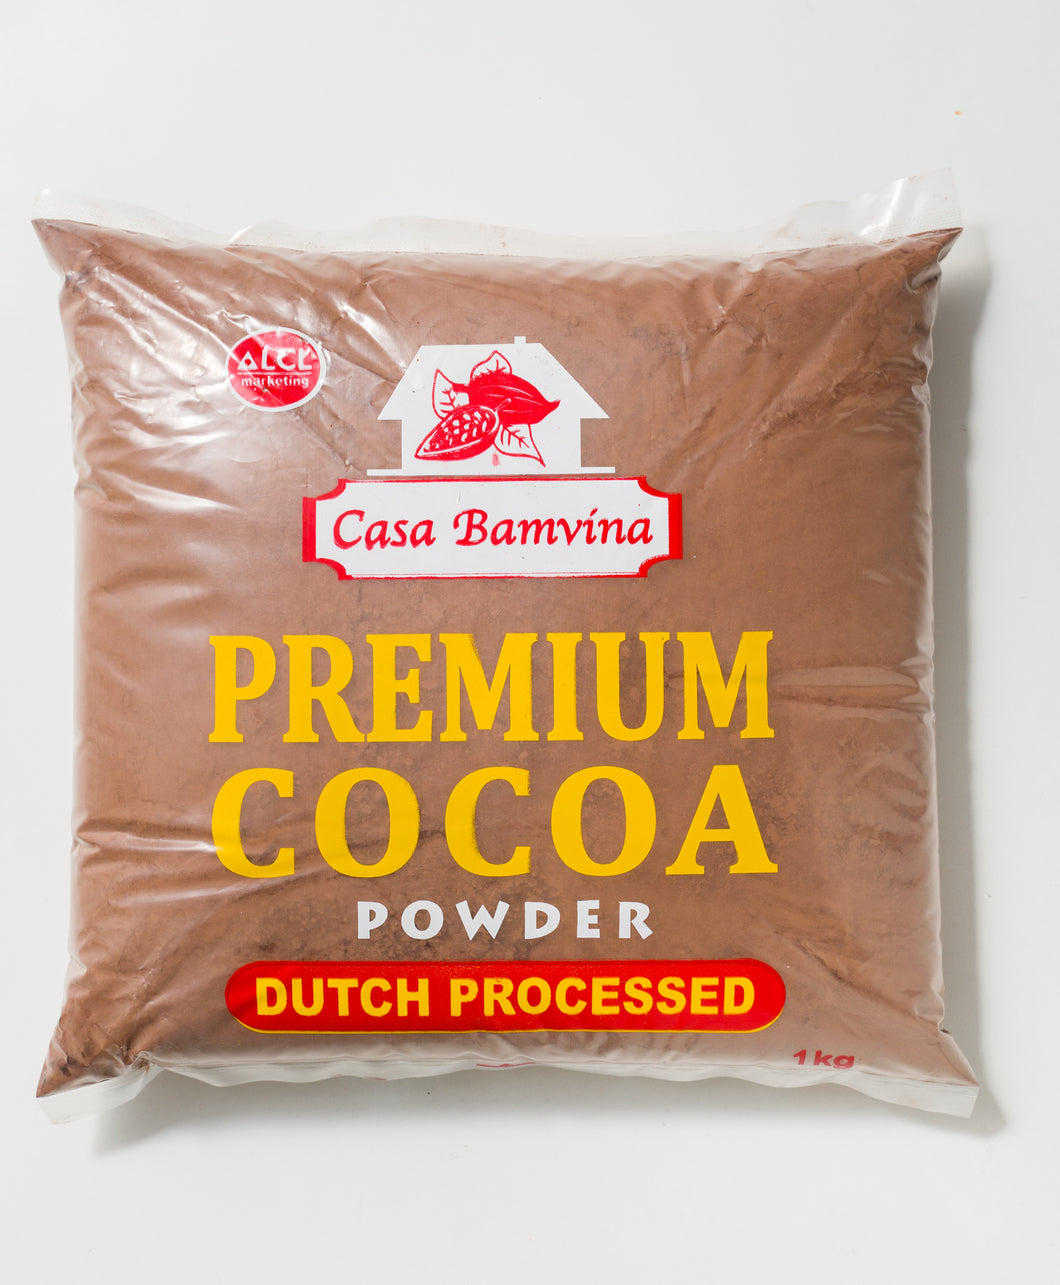 cocoa powder baking supplies bensdorp cocoa JB Cocoa